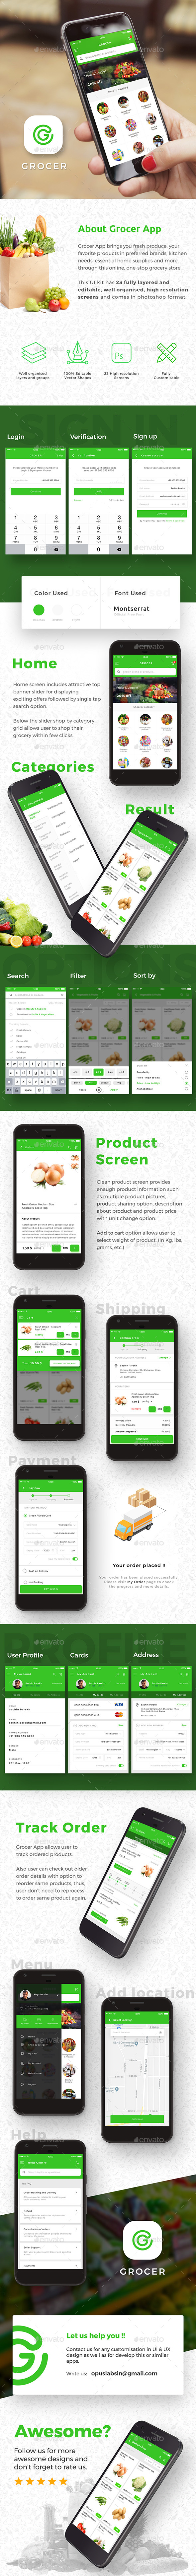 Grocery App UI For Android & iOS - Grocer - User Interfaces Web Elements